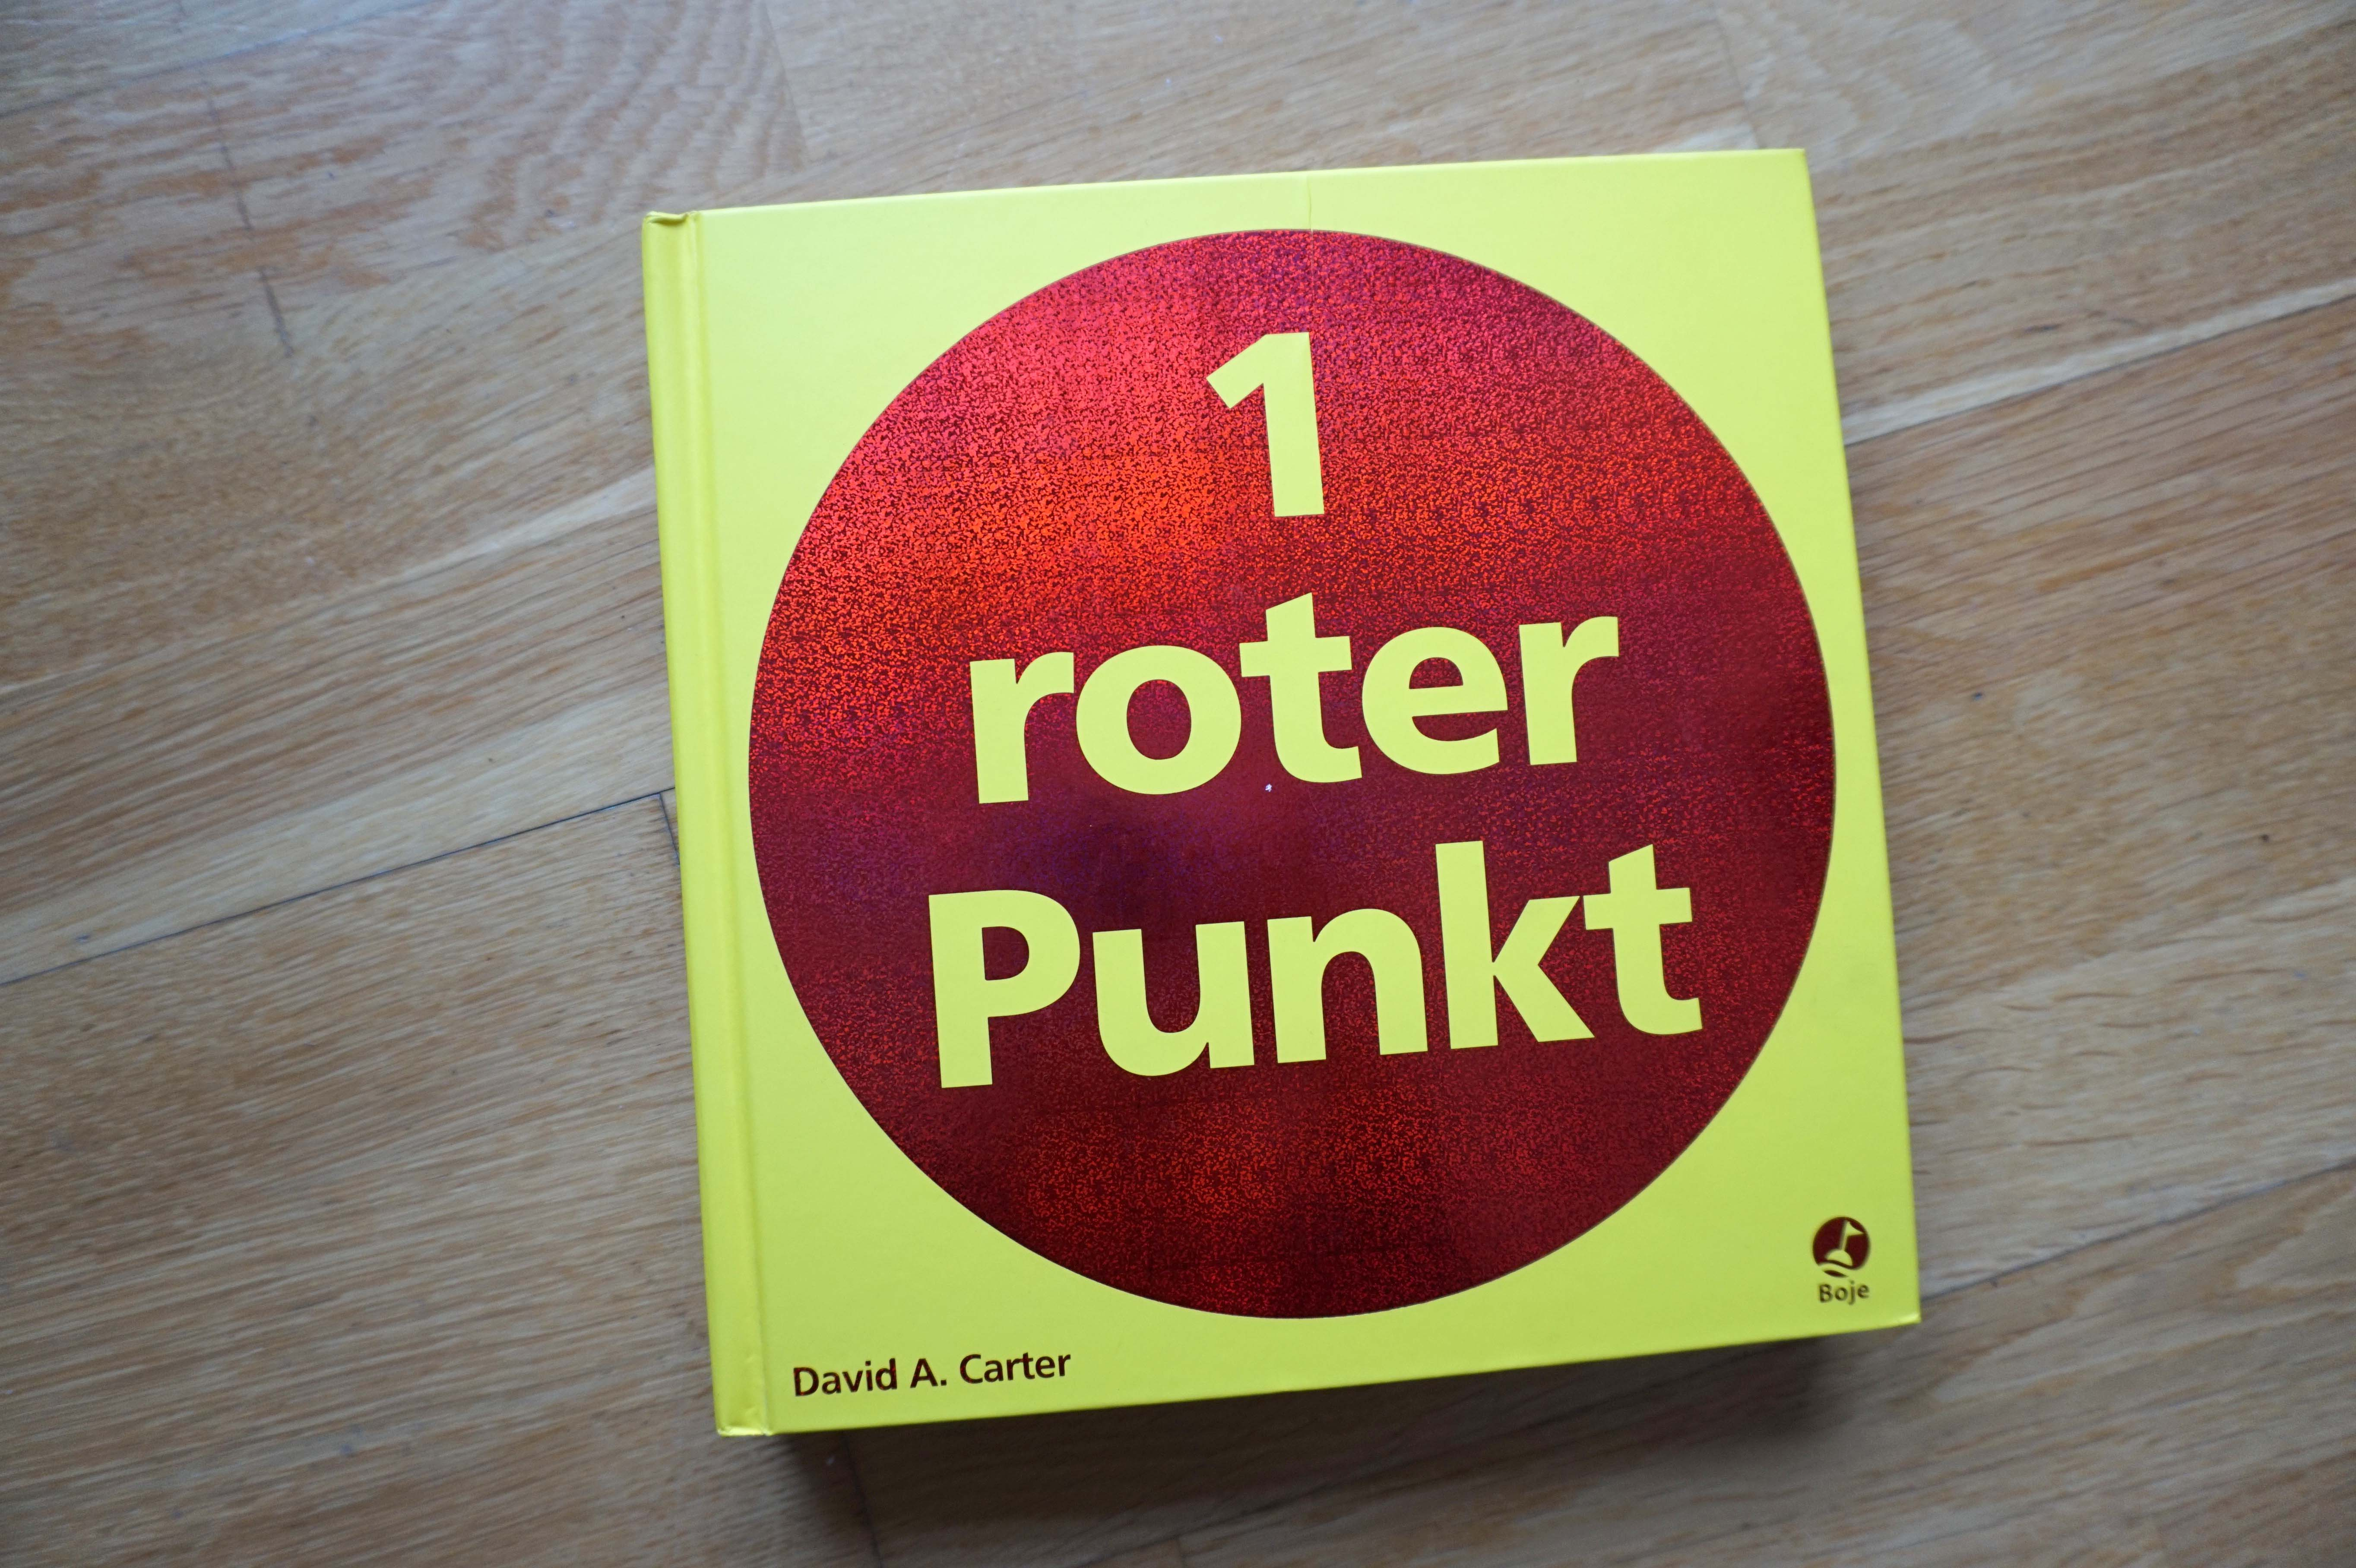 1 roter Punkt Book Cover